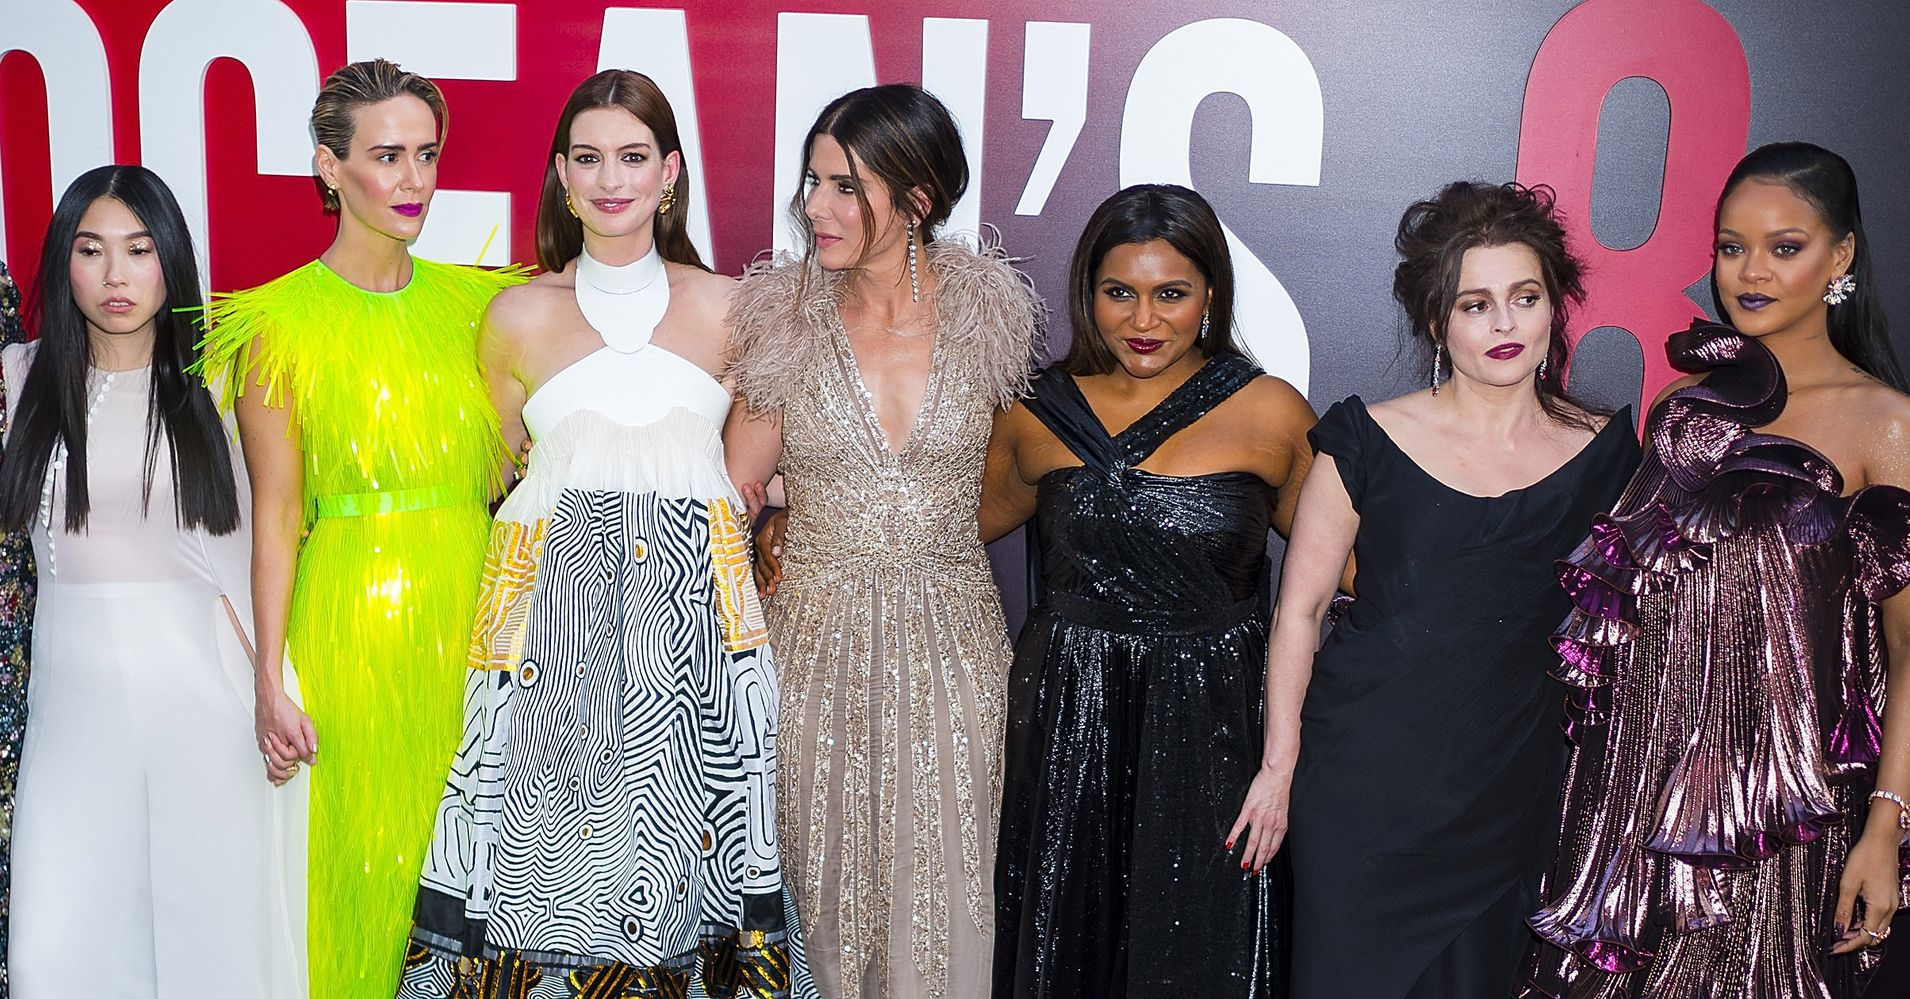 Ocean S 8 Cast Shuts Down The Red Carpet At Premiere